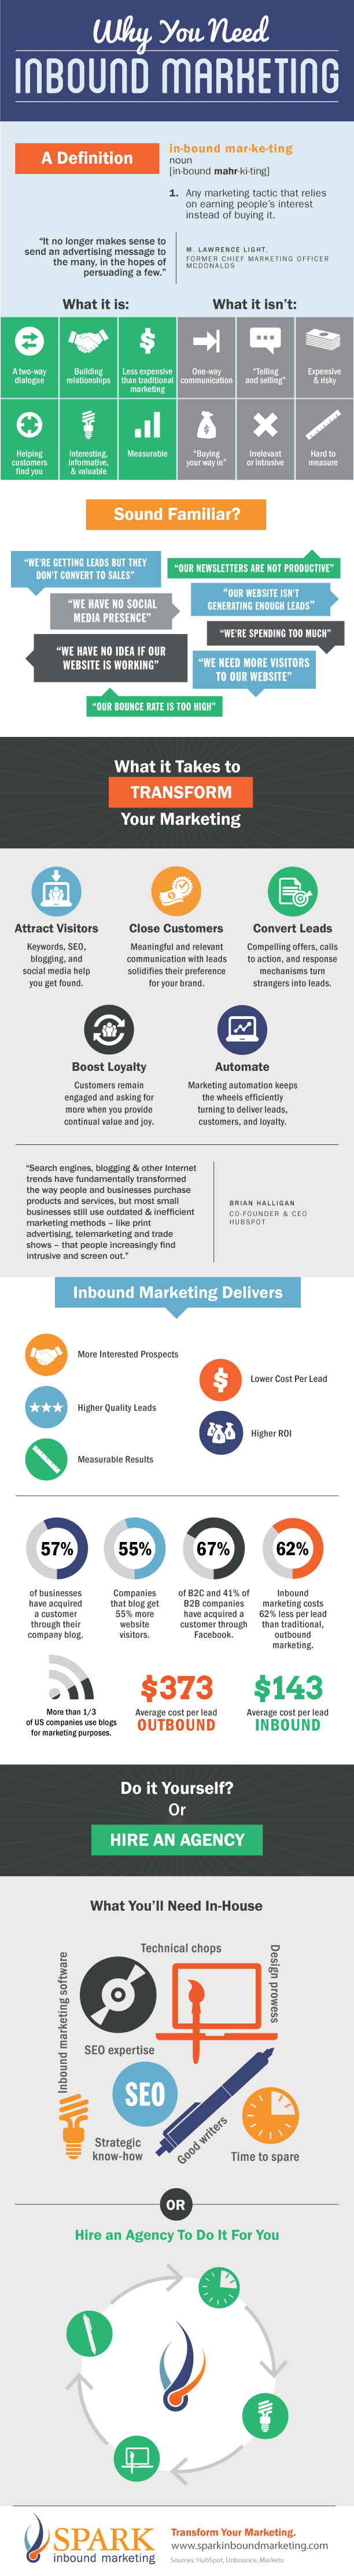 Infographic Why You Need Inbound Marketing Mycustomer